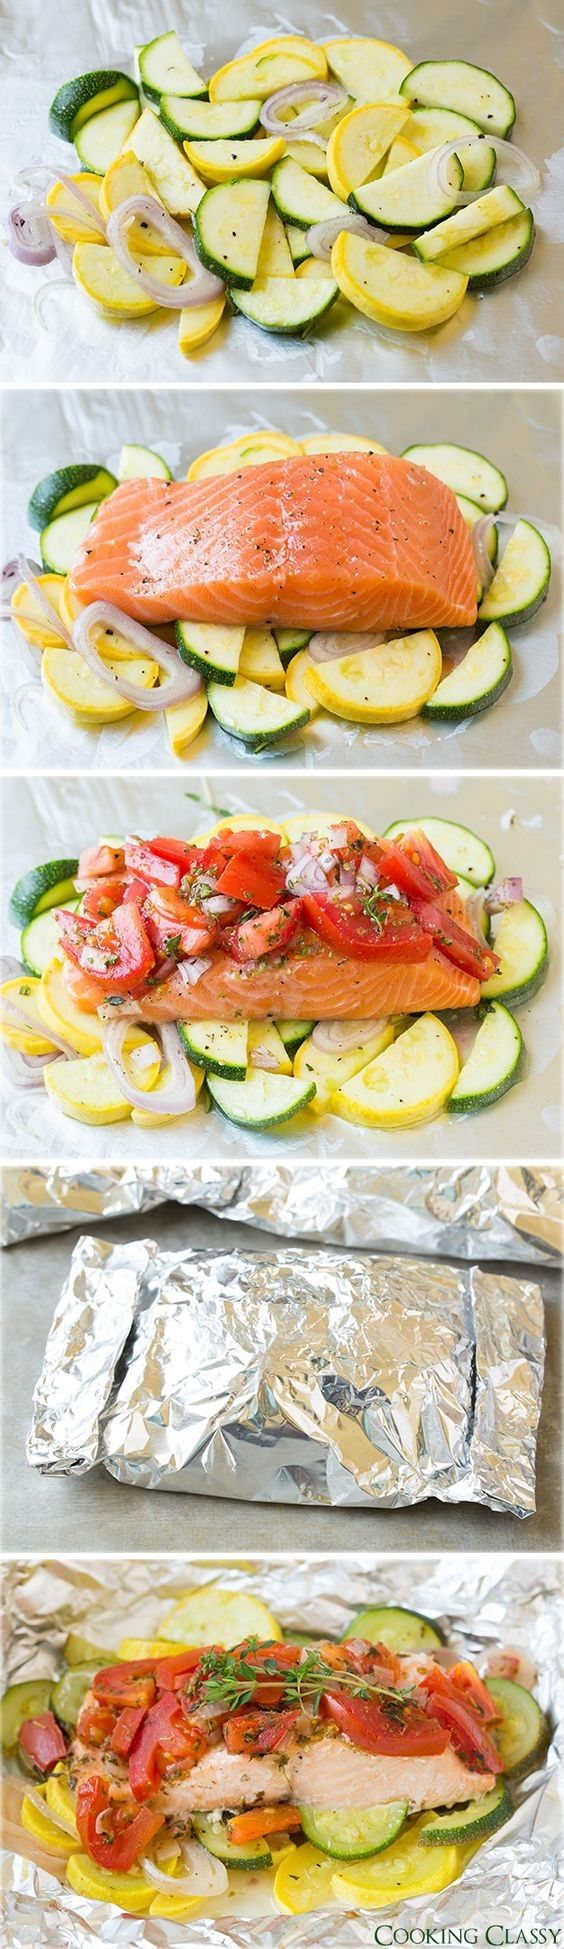 5+Low-Carb+Recipes+With+Over+90K+Repins+on+Pinterest+via+@ByrdieBeauty